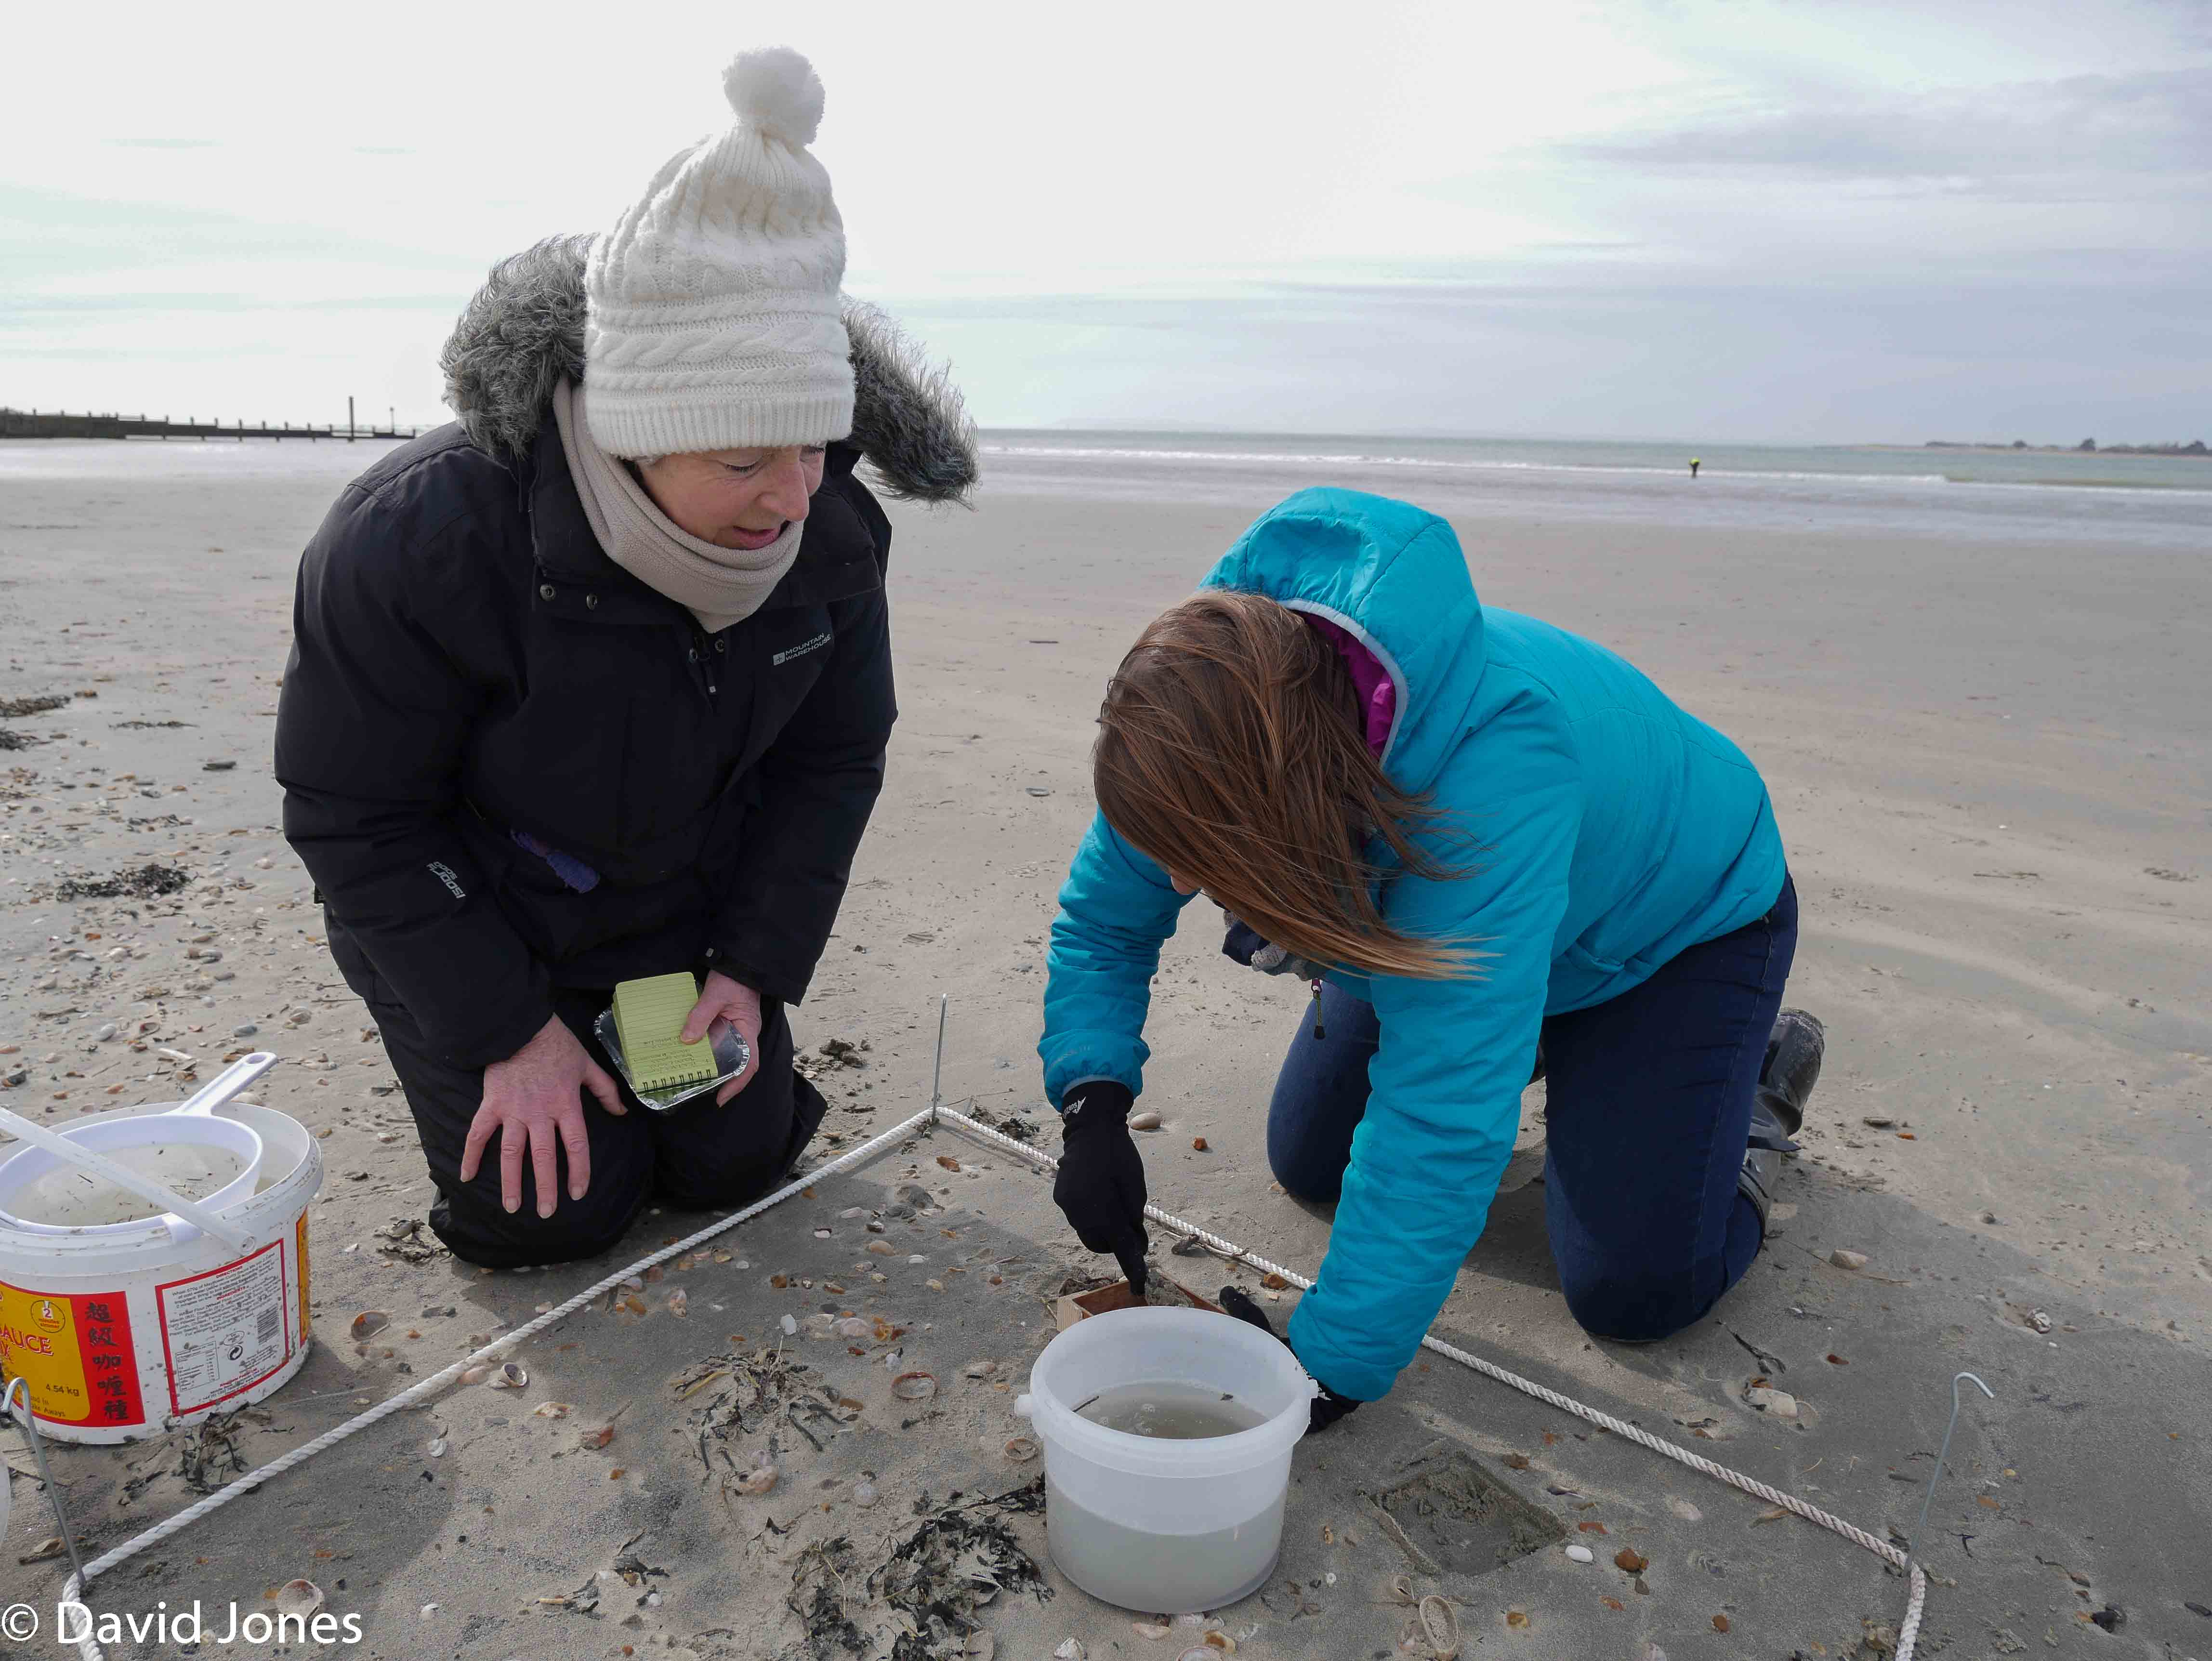 We launch The Big Microplastic Survey